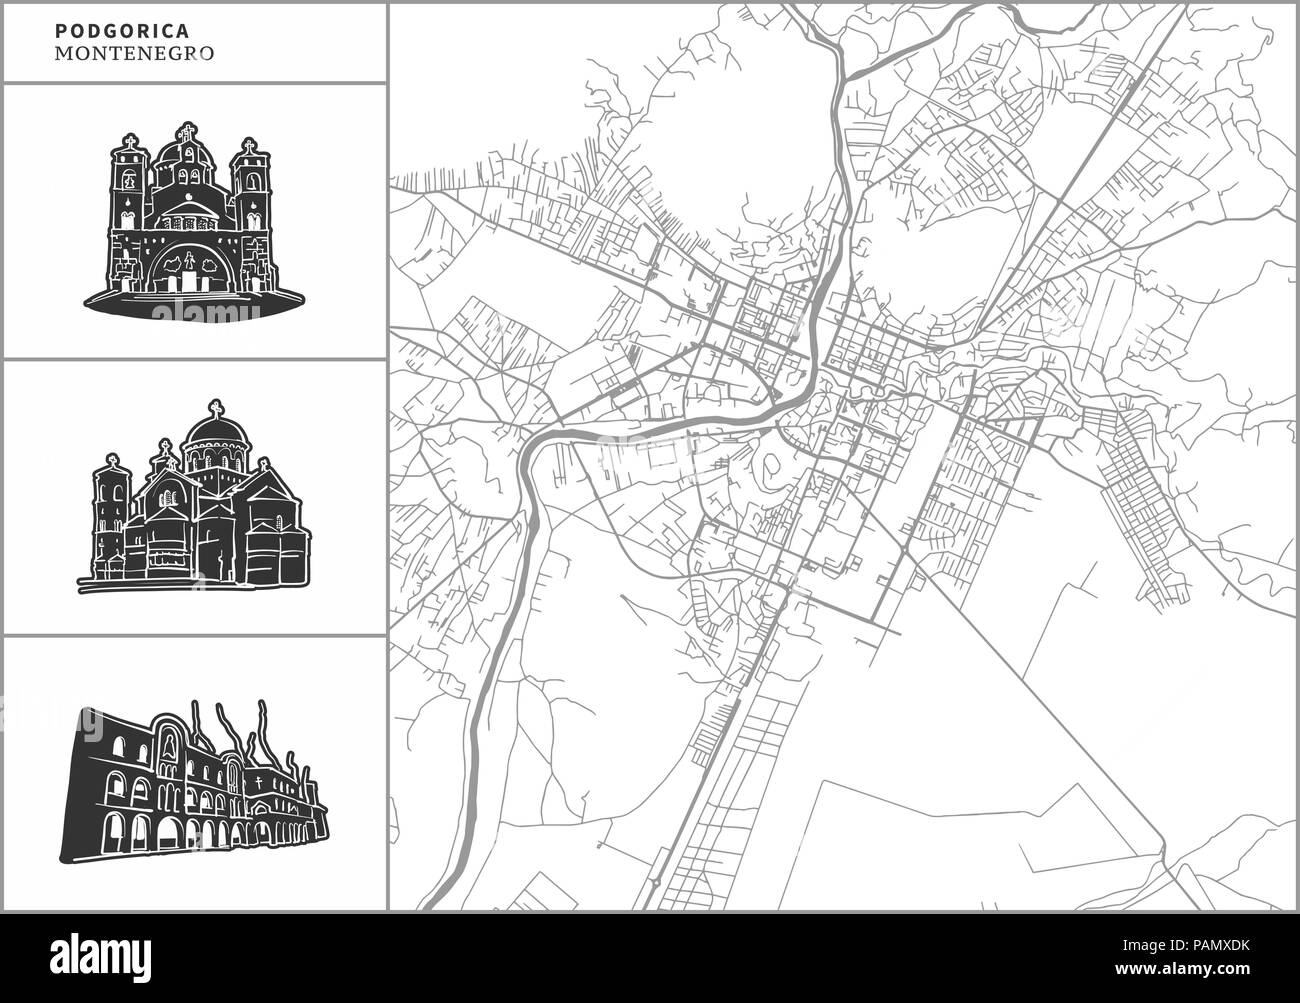 Podgorica city map with hand-drawn architecture icons. All drawigns, map and background separated for easy color change. Easy repositioning in vector  Stock Vector